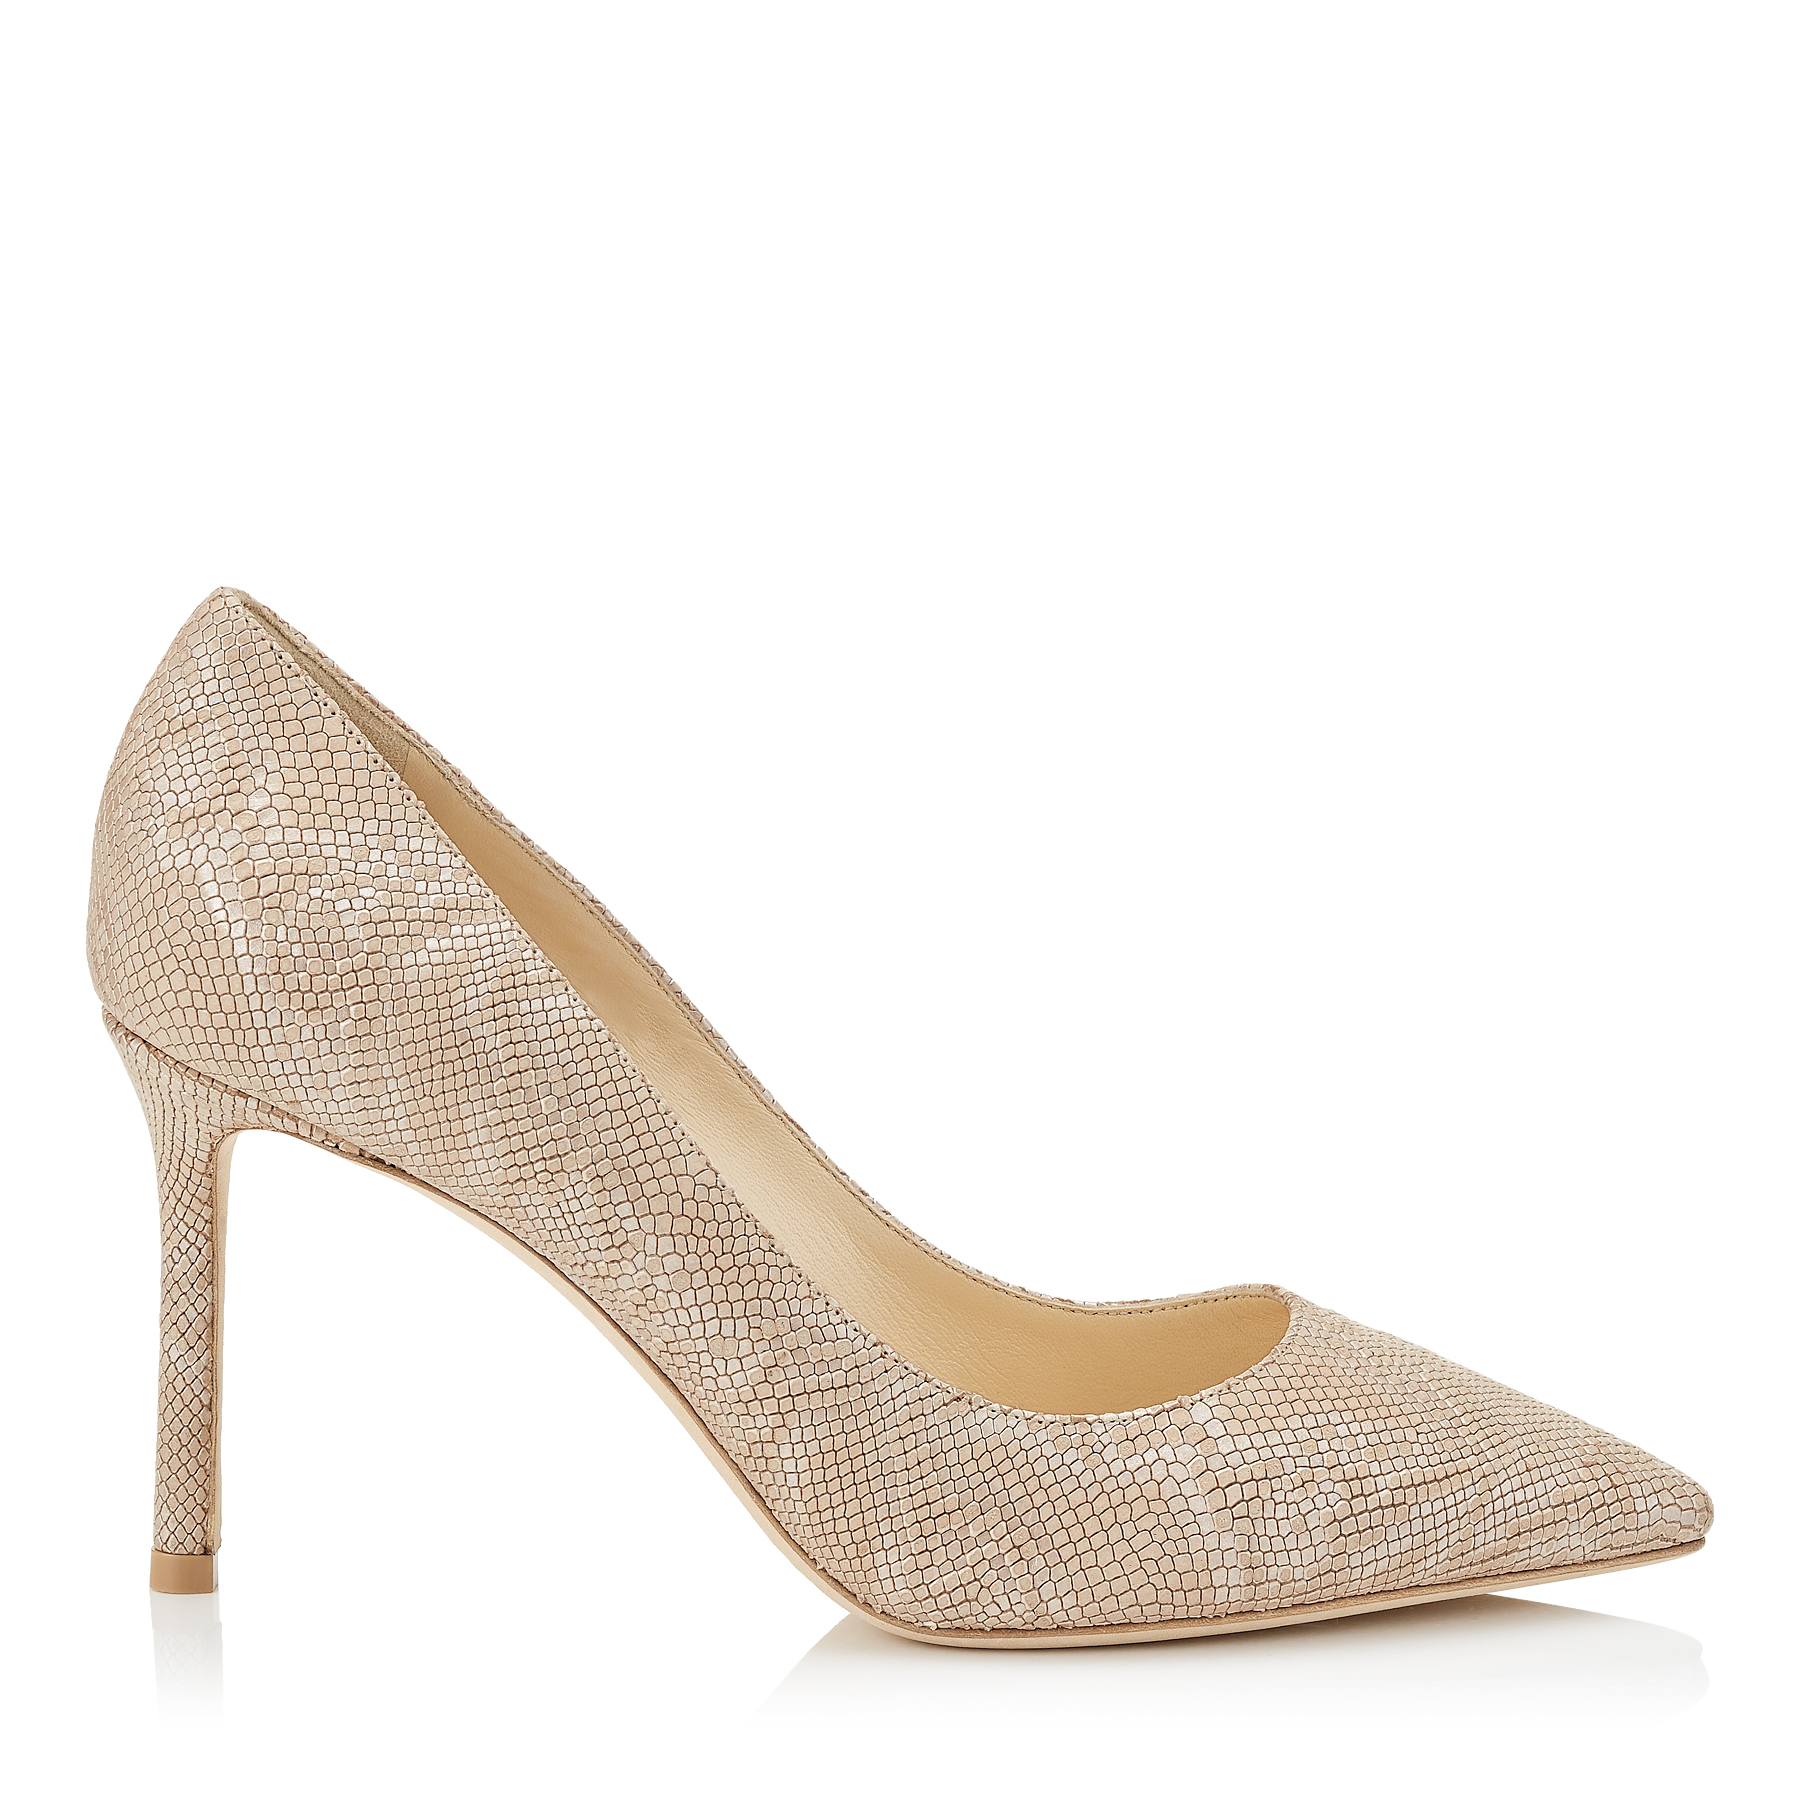 ROMY 85 Nude Metallic Embossed Lame Leather Pointy Toe Pumps